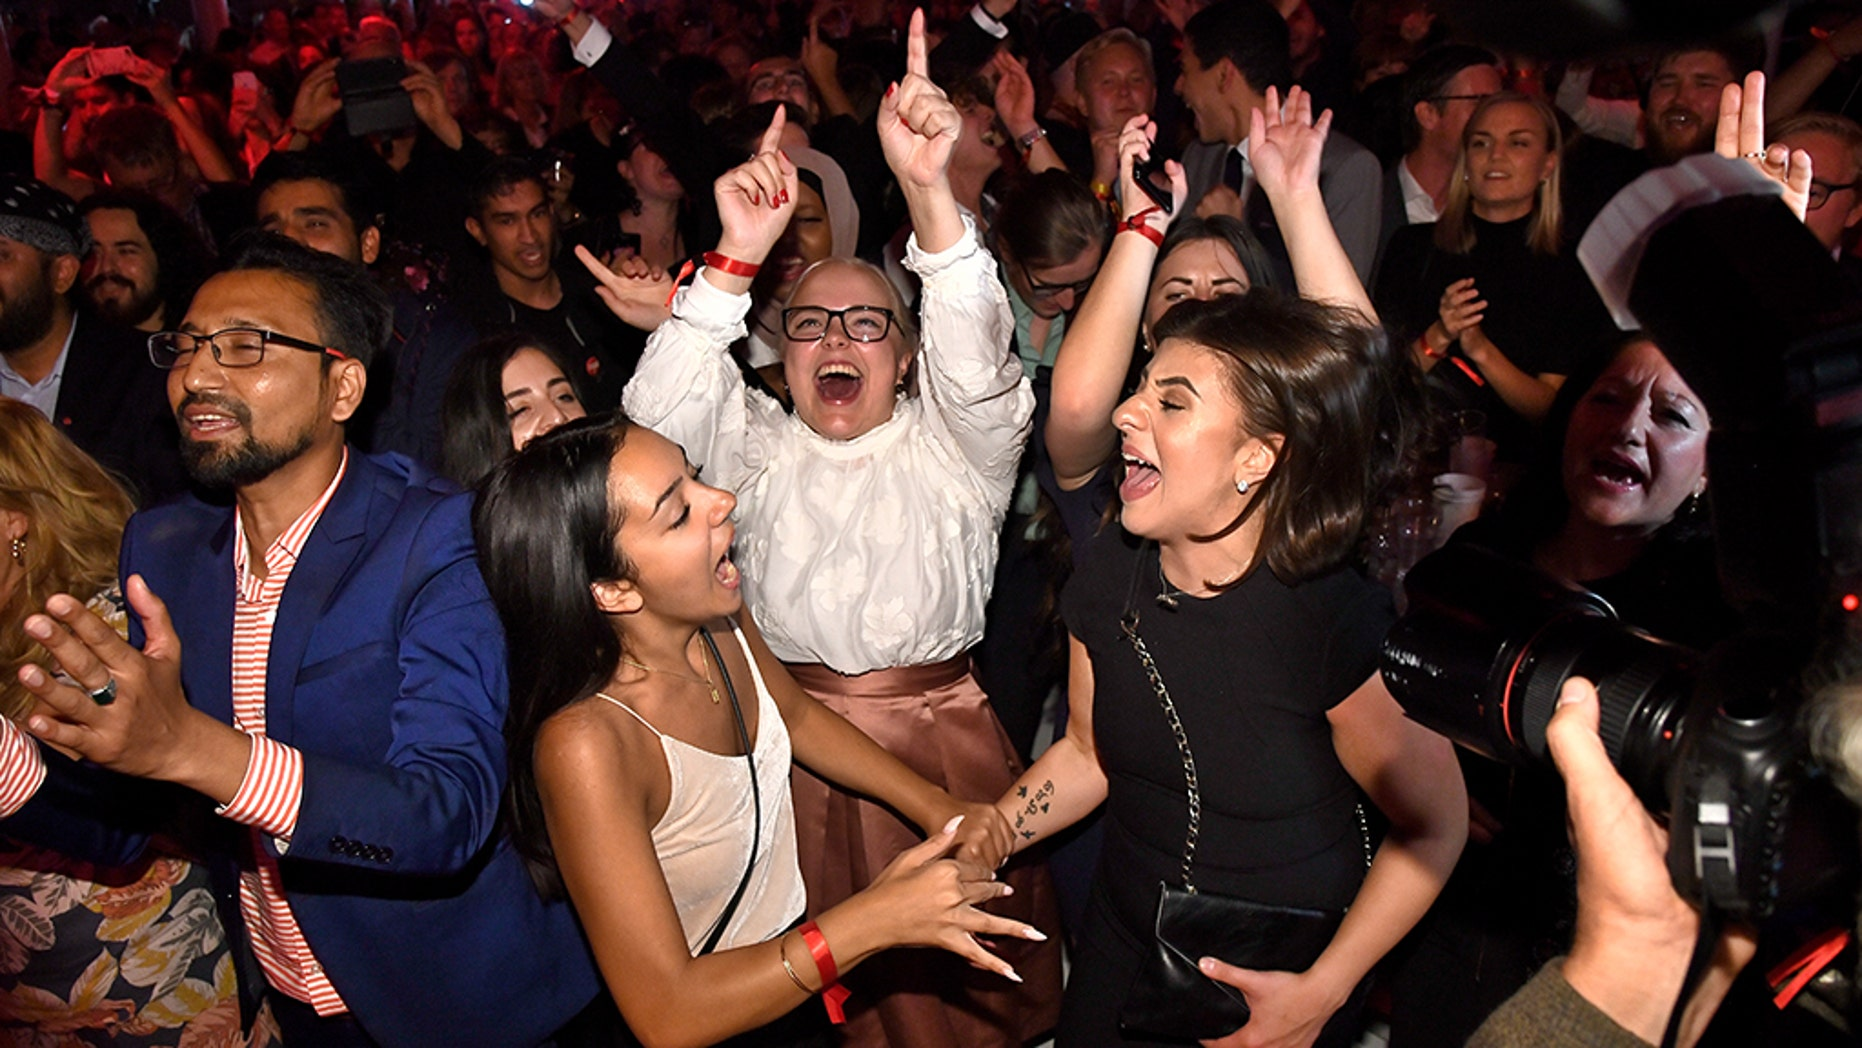 Supporters attend the Social Democratic Party's election night party in Stockholm, Sweden, Sunday. A preliminary count from Sweden's general election showed an anti-immigrant party with a neo-Nazi past placing third and the ruling center-right party making its worst showing in decades with more than half of the ballots tallied.